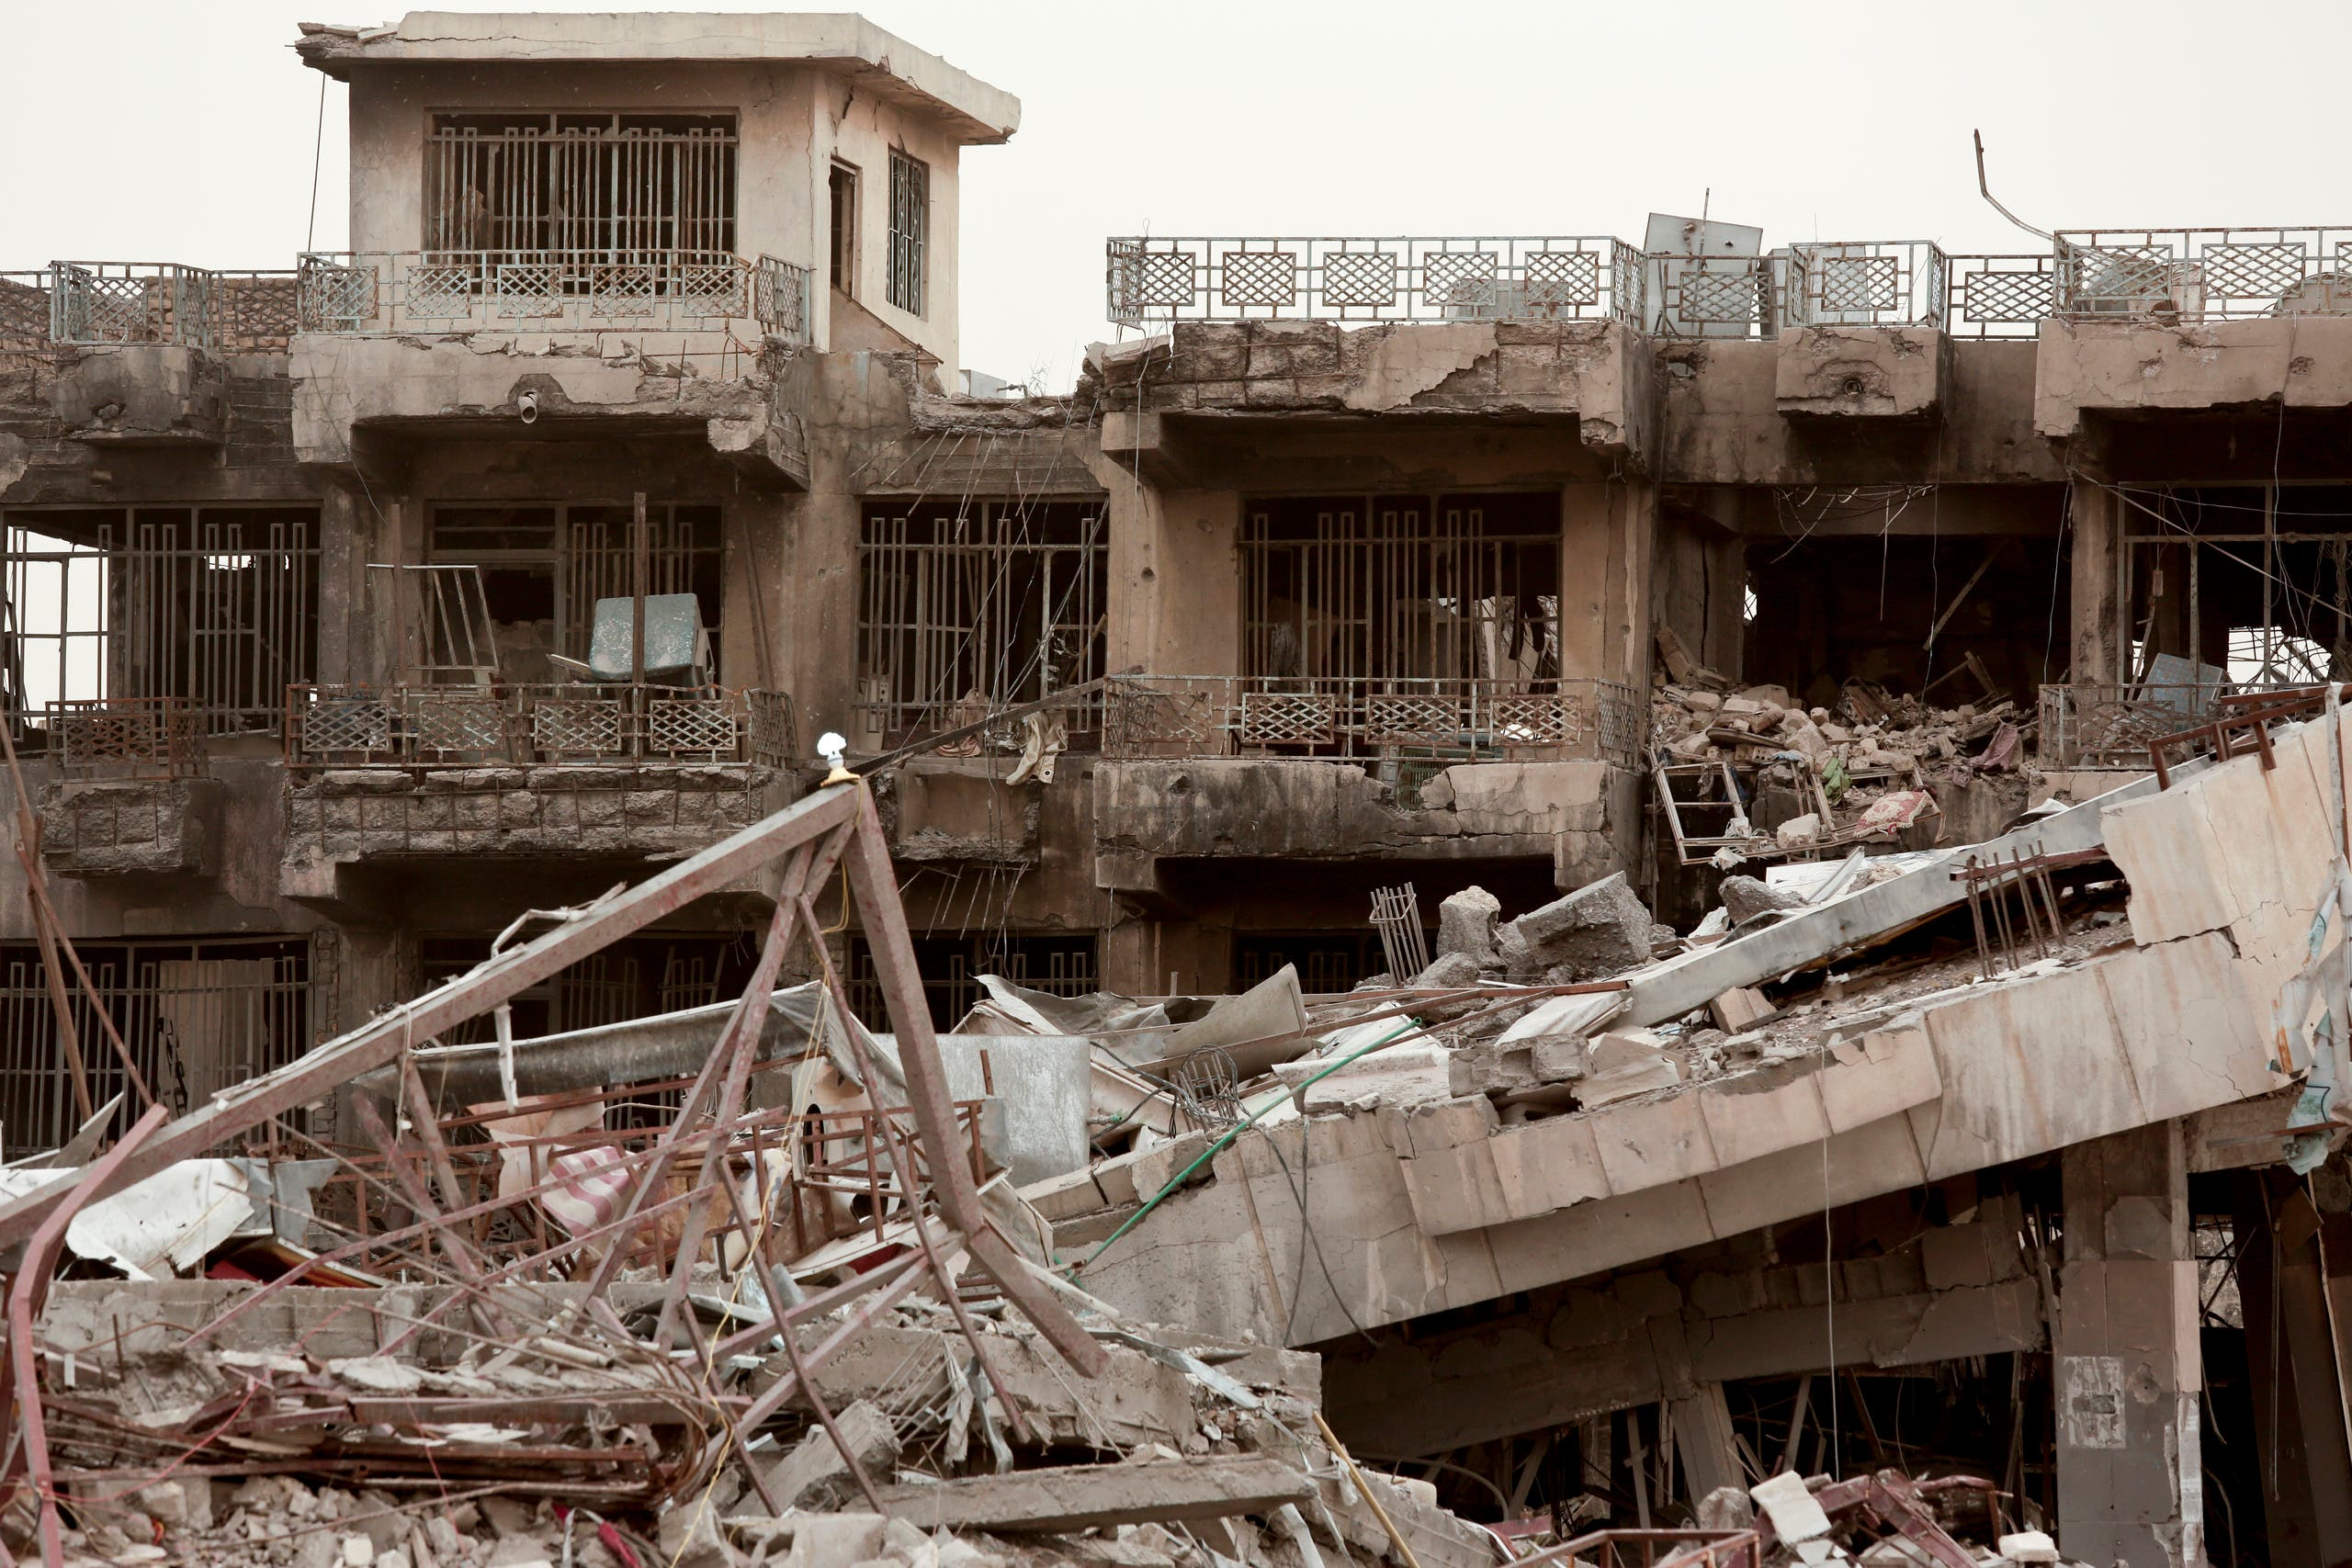 Two buildings in Haji Ziad Square in of the Iraqi city of Ramadi show extensive damage in this March 20, 2016, photo, months after U.S.-backed Iraqi forces freed the city from the Islamic State group. (AP)